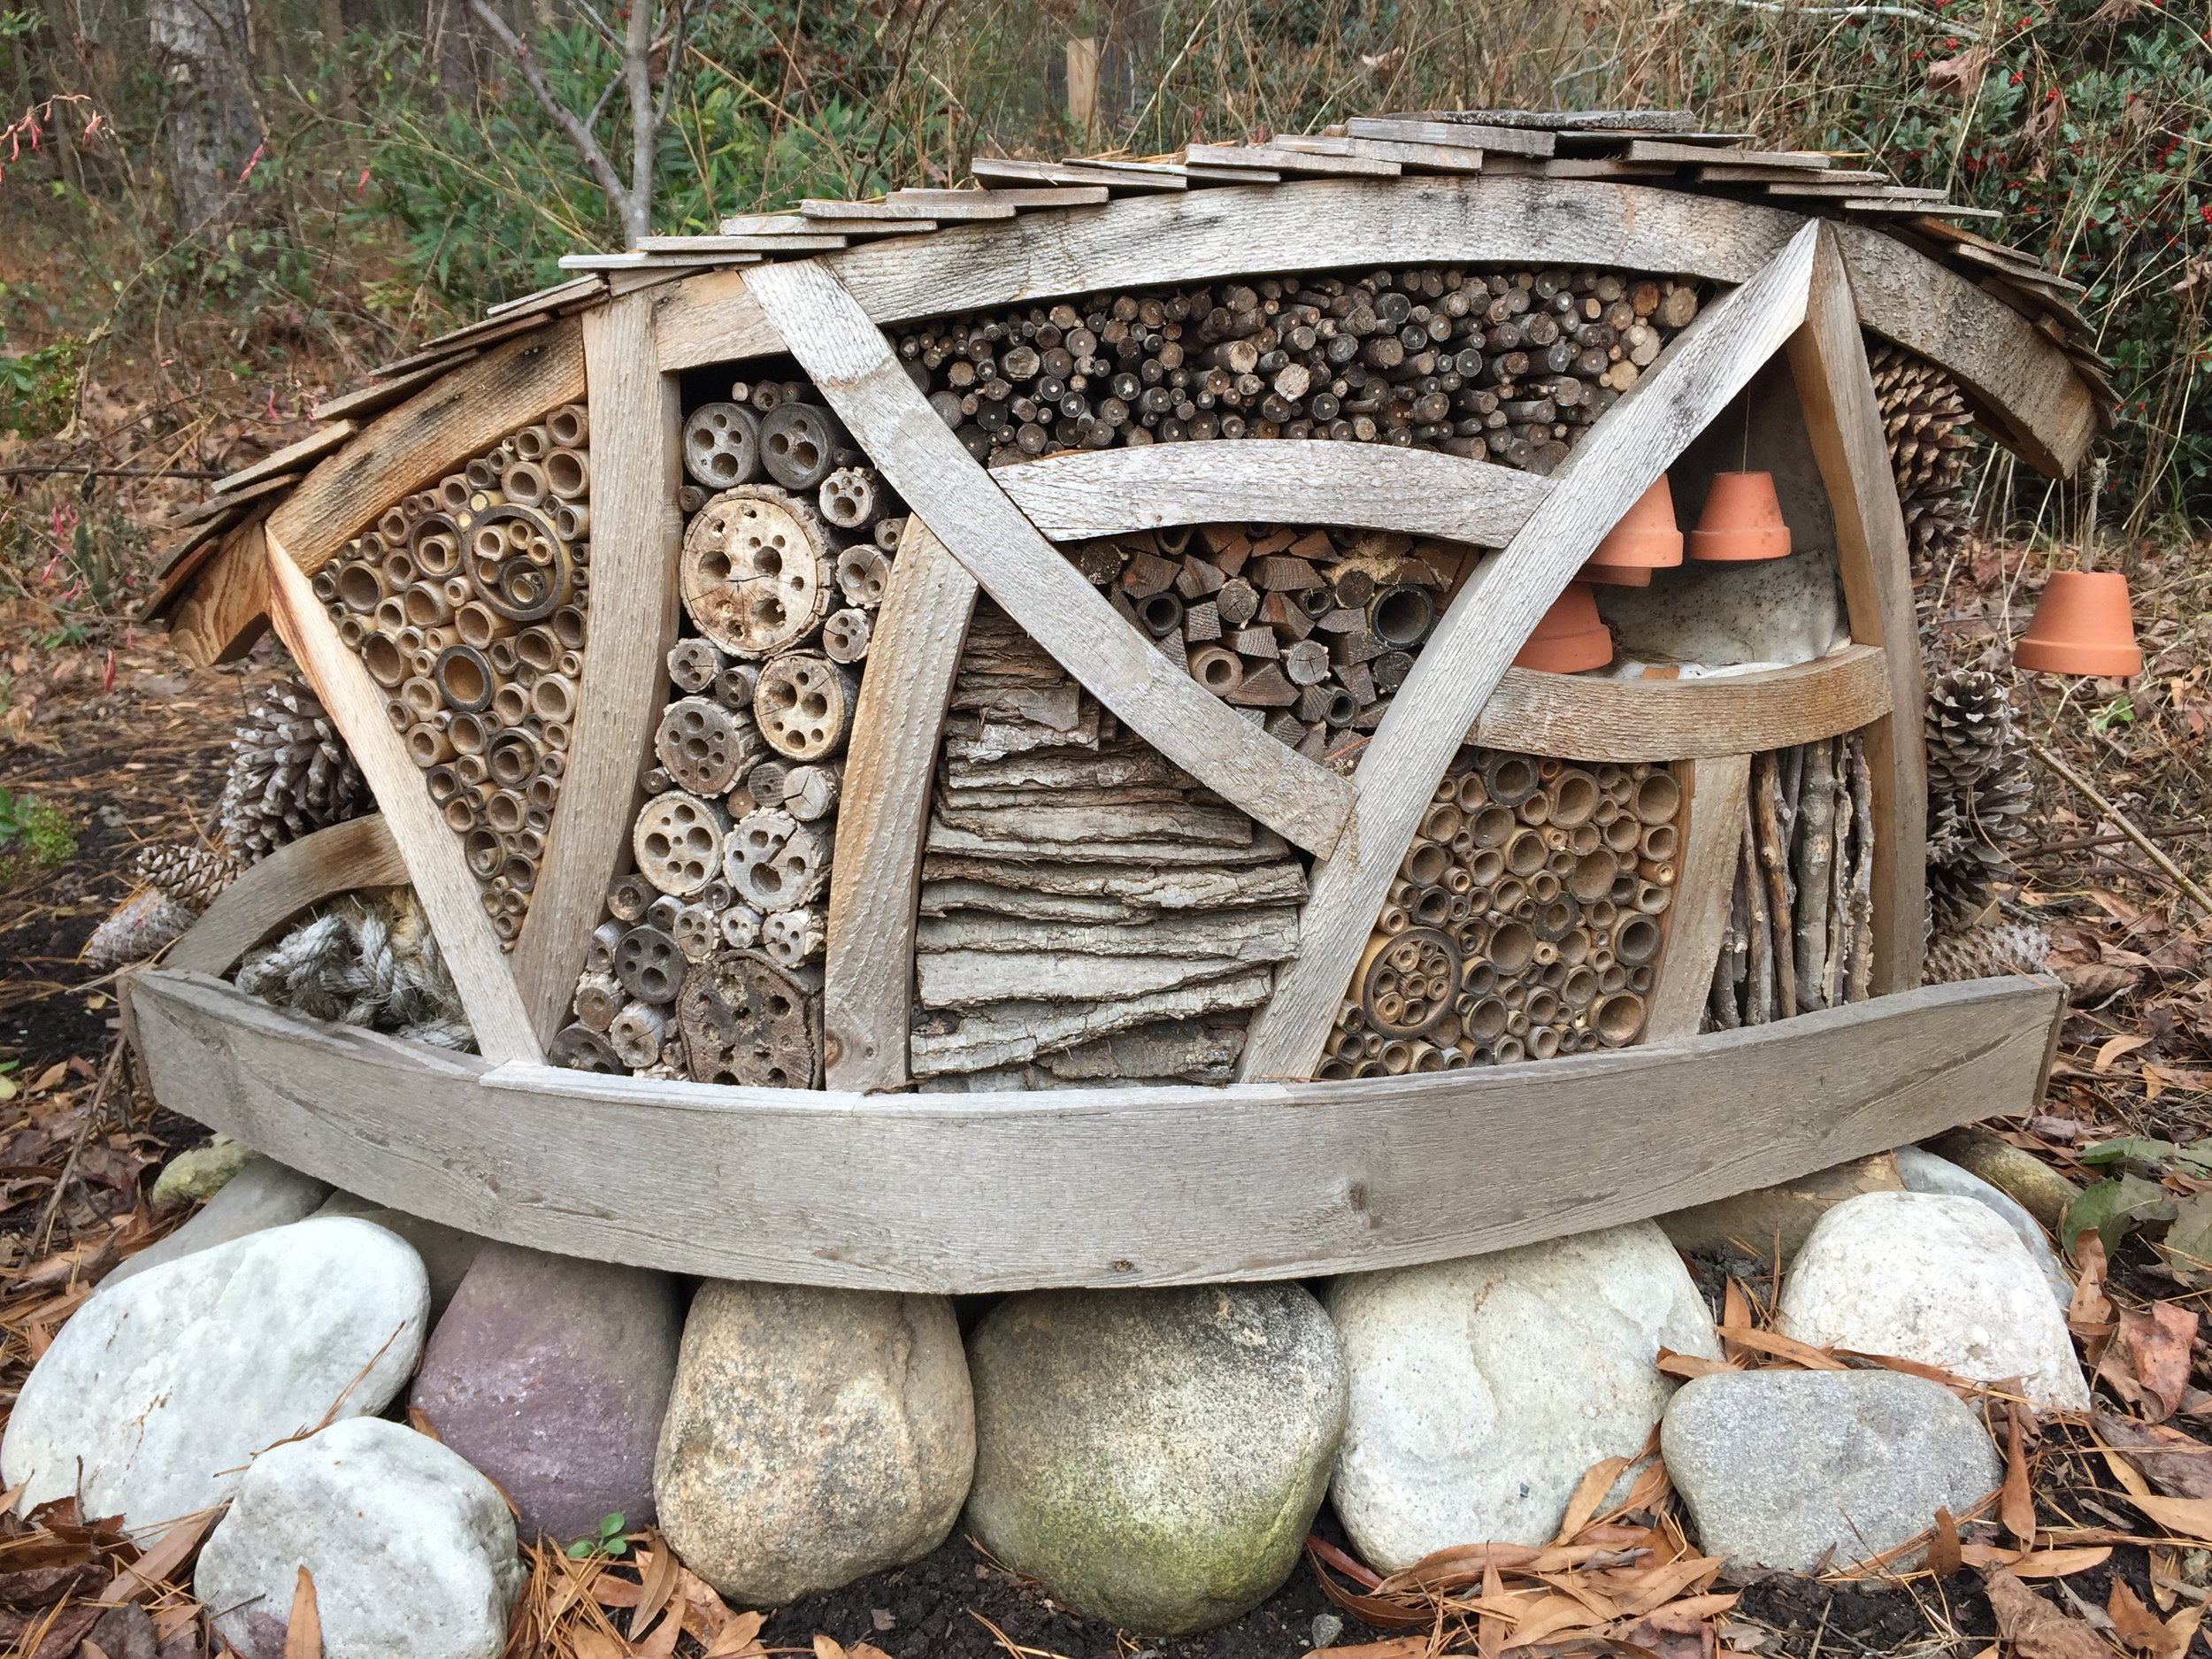 Museum of Life and Science's insect hotel is so cozy, we kind of want to move in ...